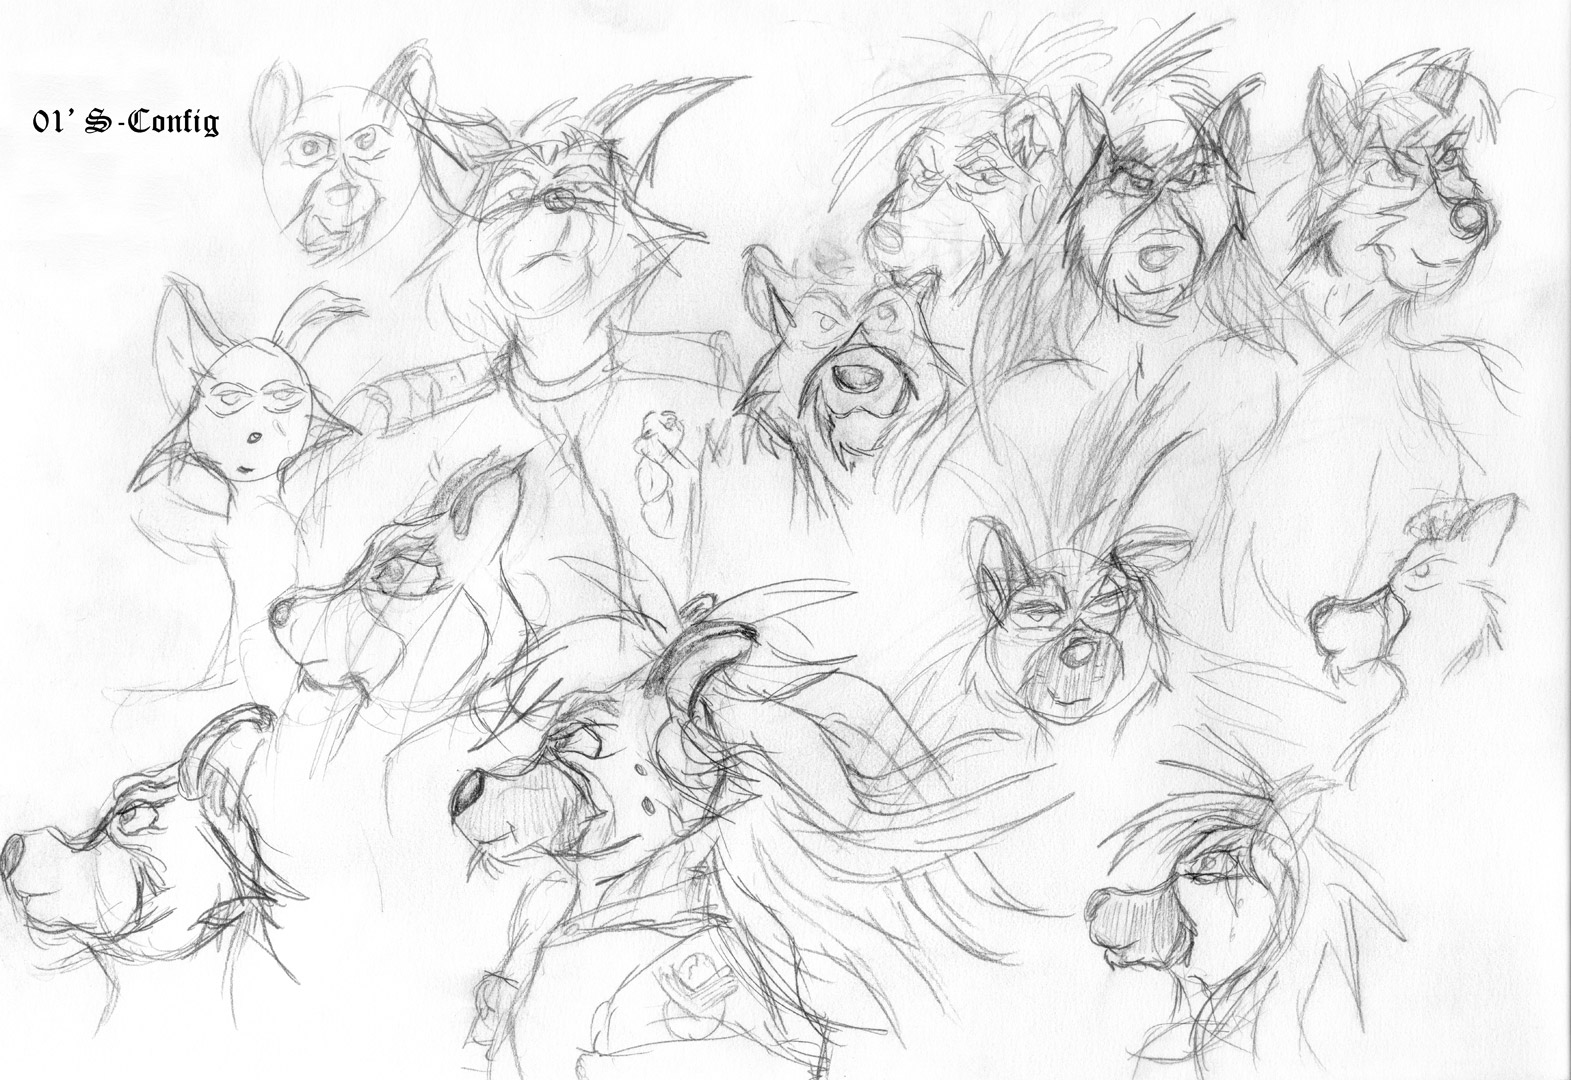 random head sketches of Flay and a few other characters - Sketch.